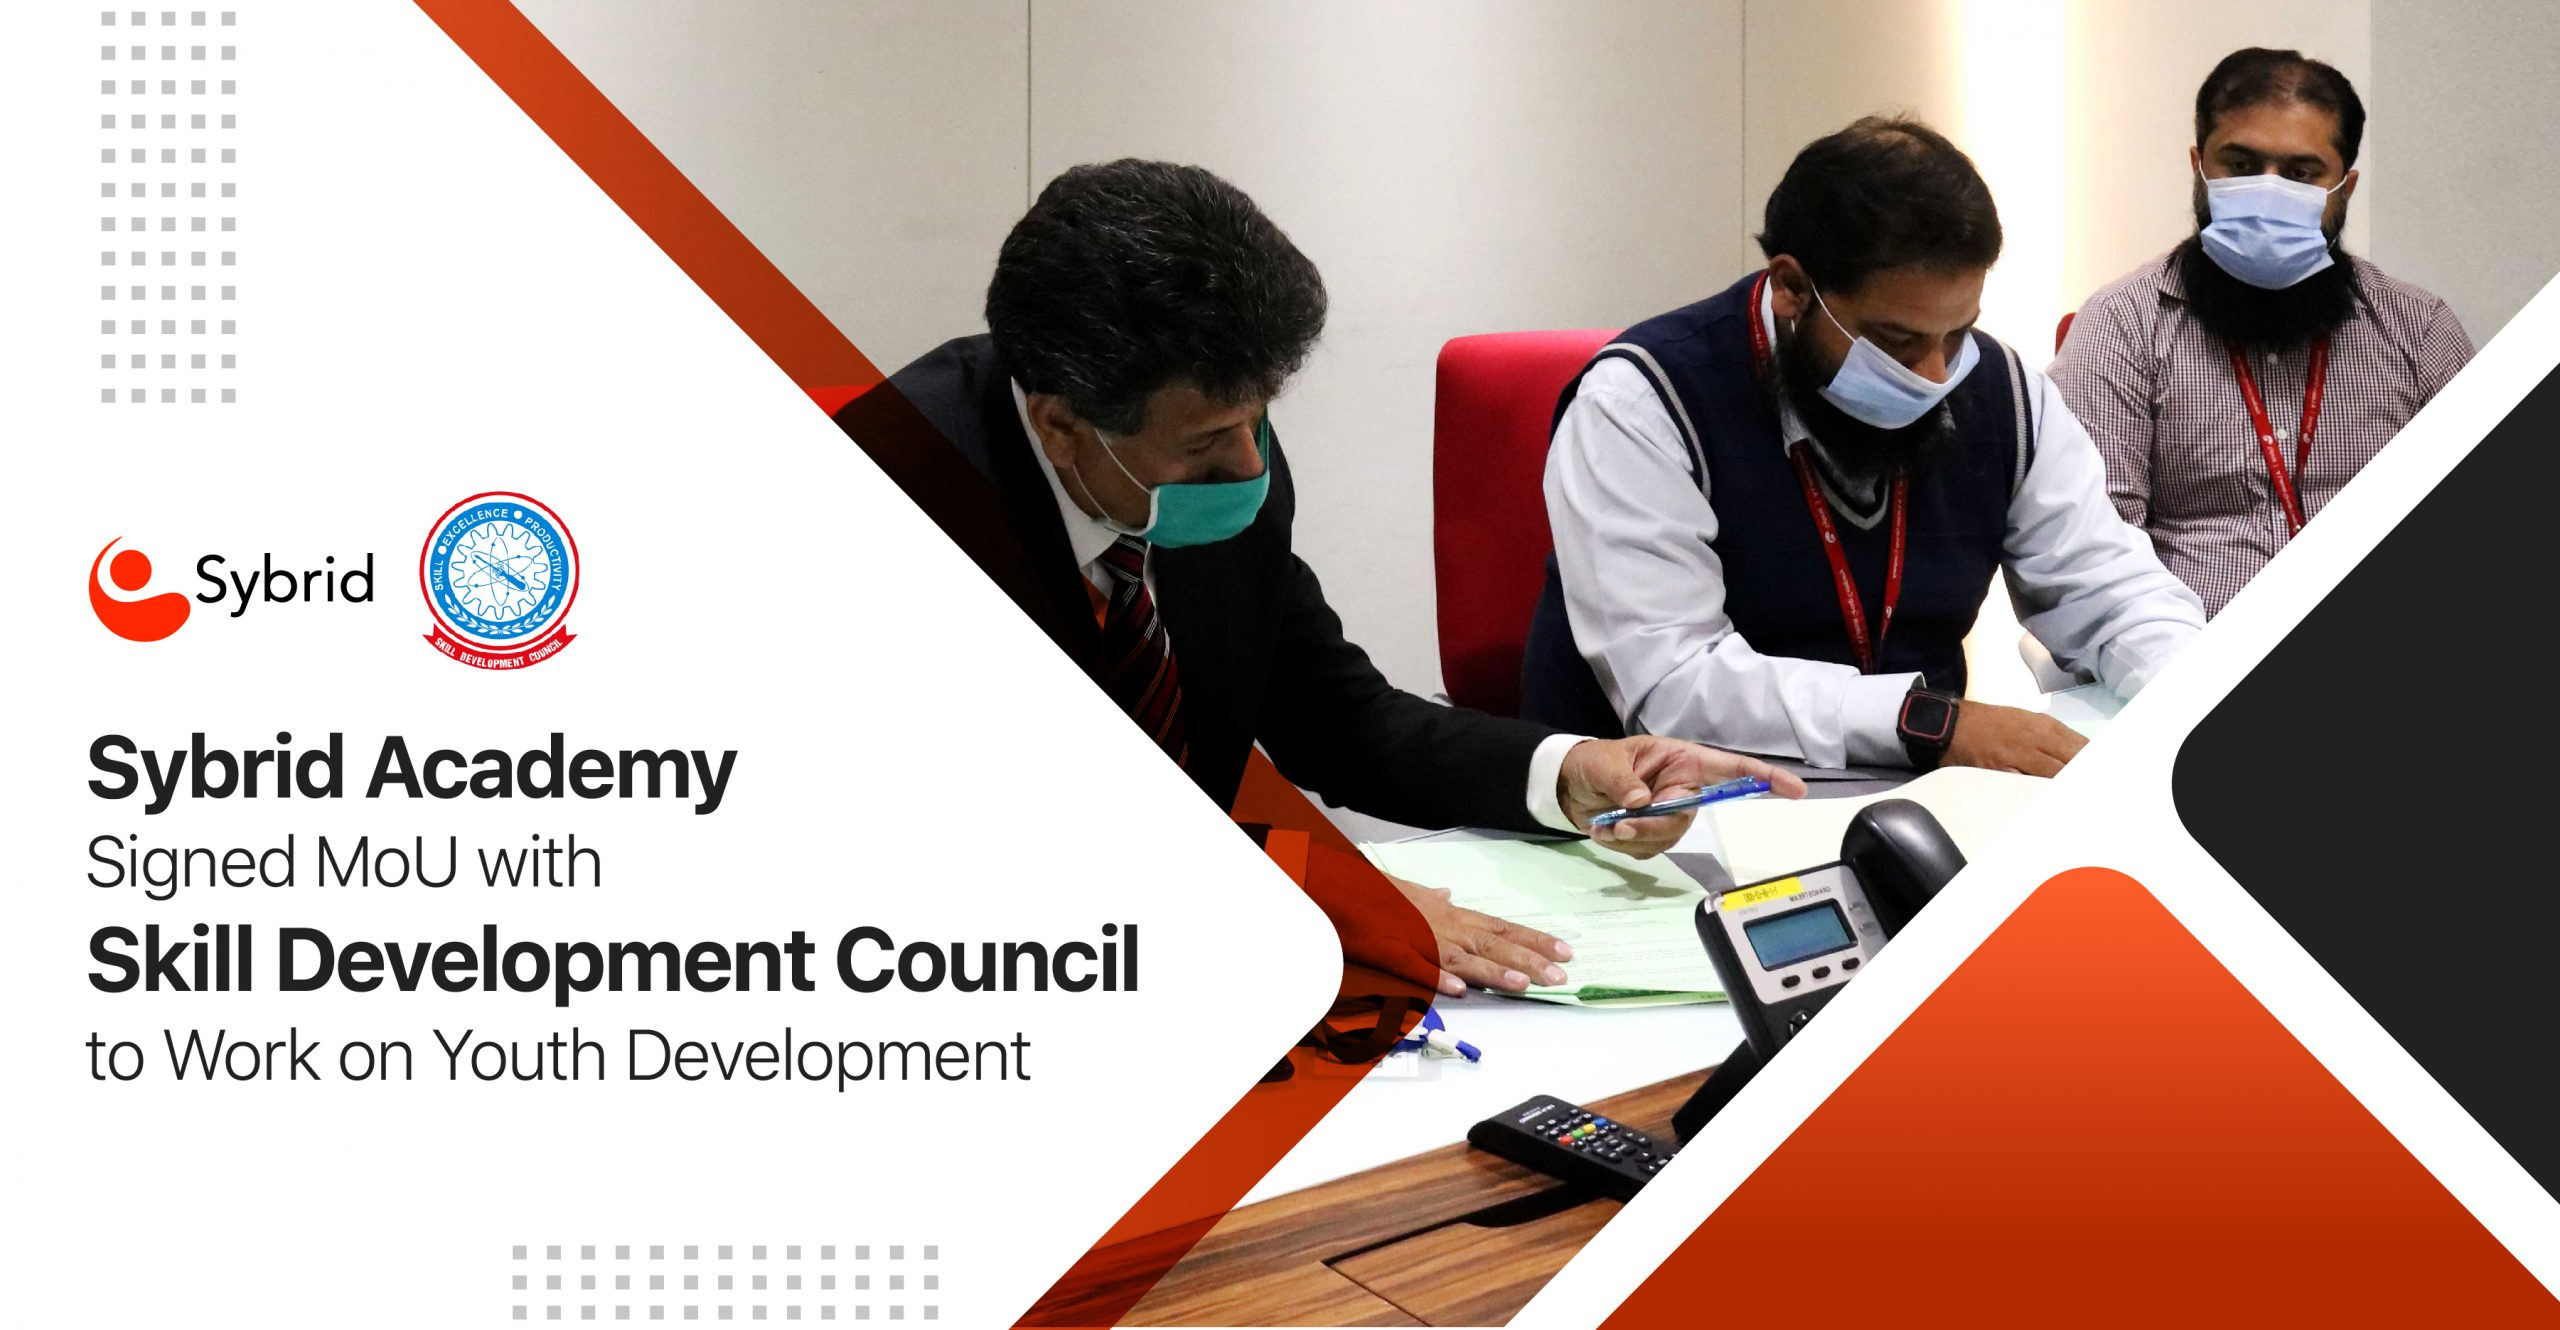 Sybrid Academy Signed MoU with Skill Development Council to Work on Youth Development